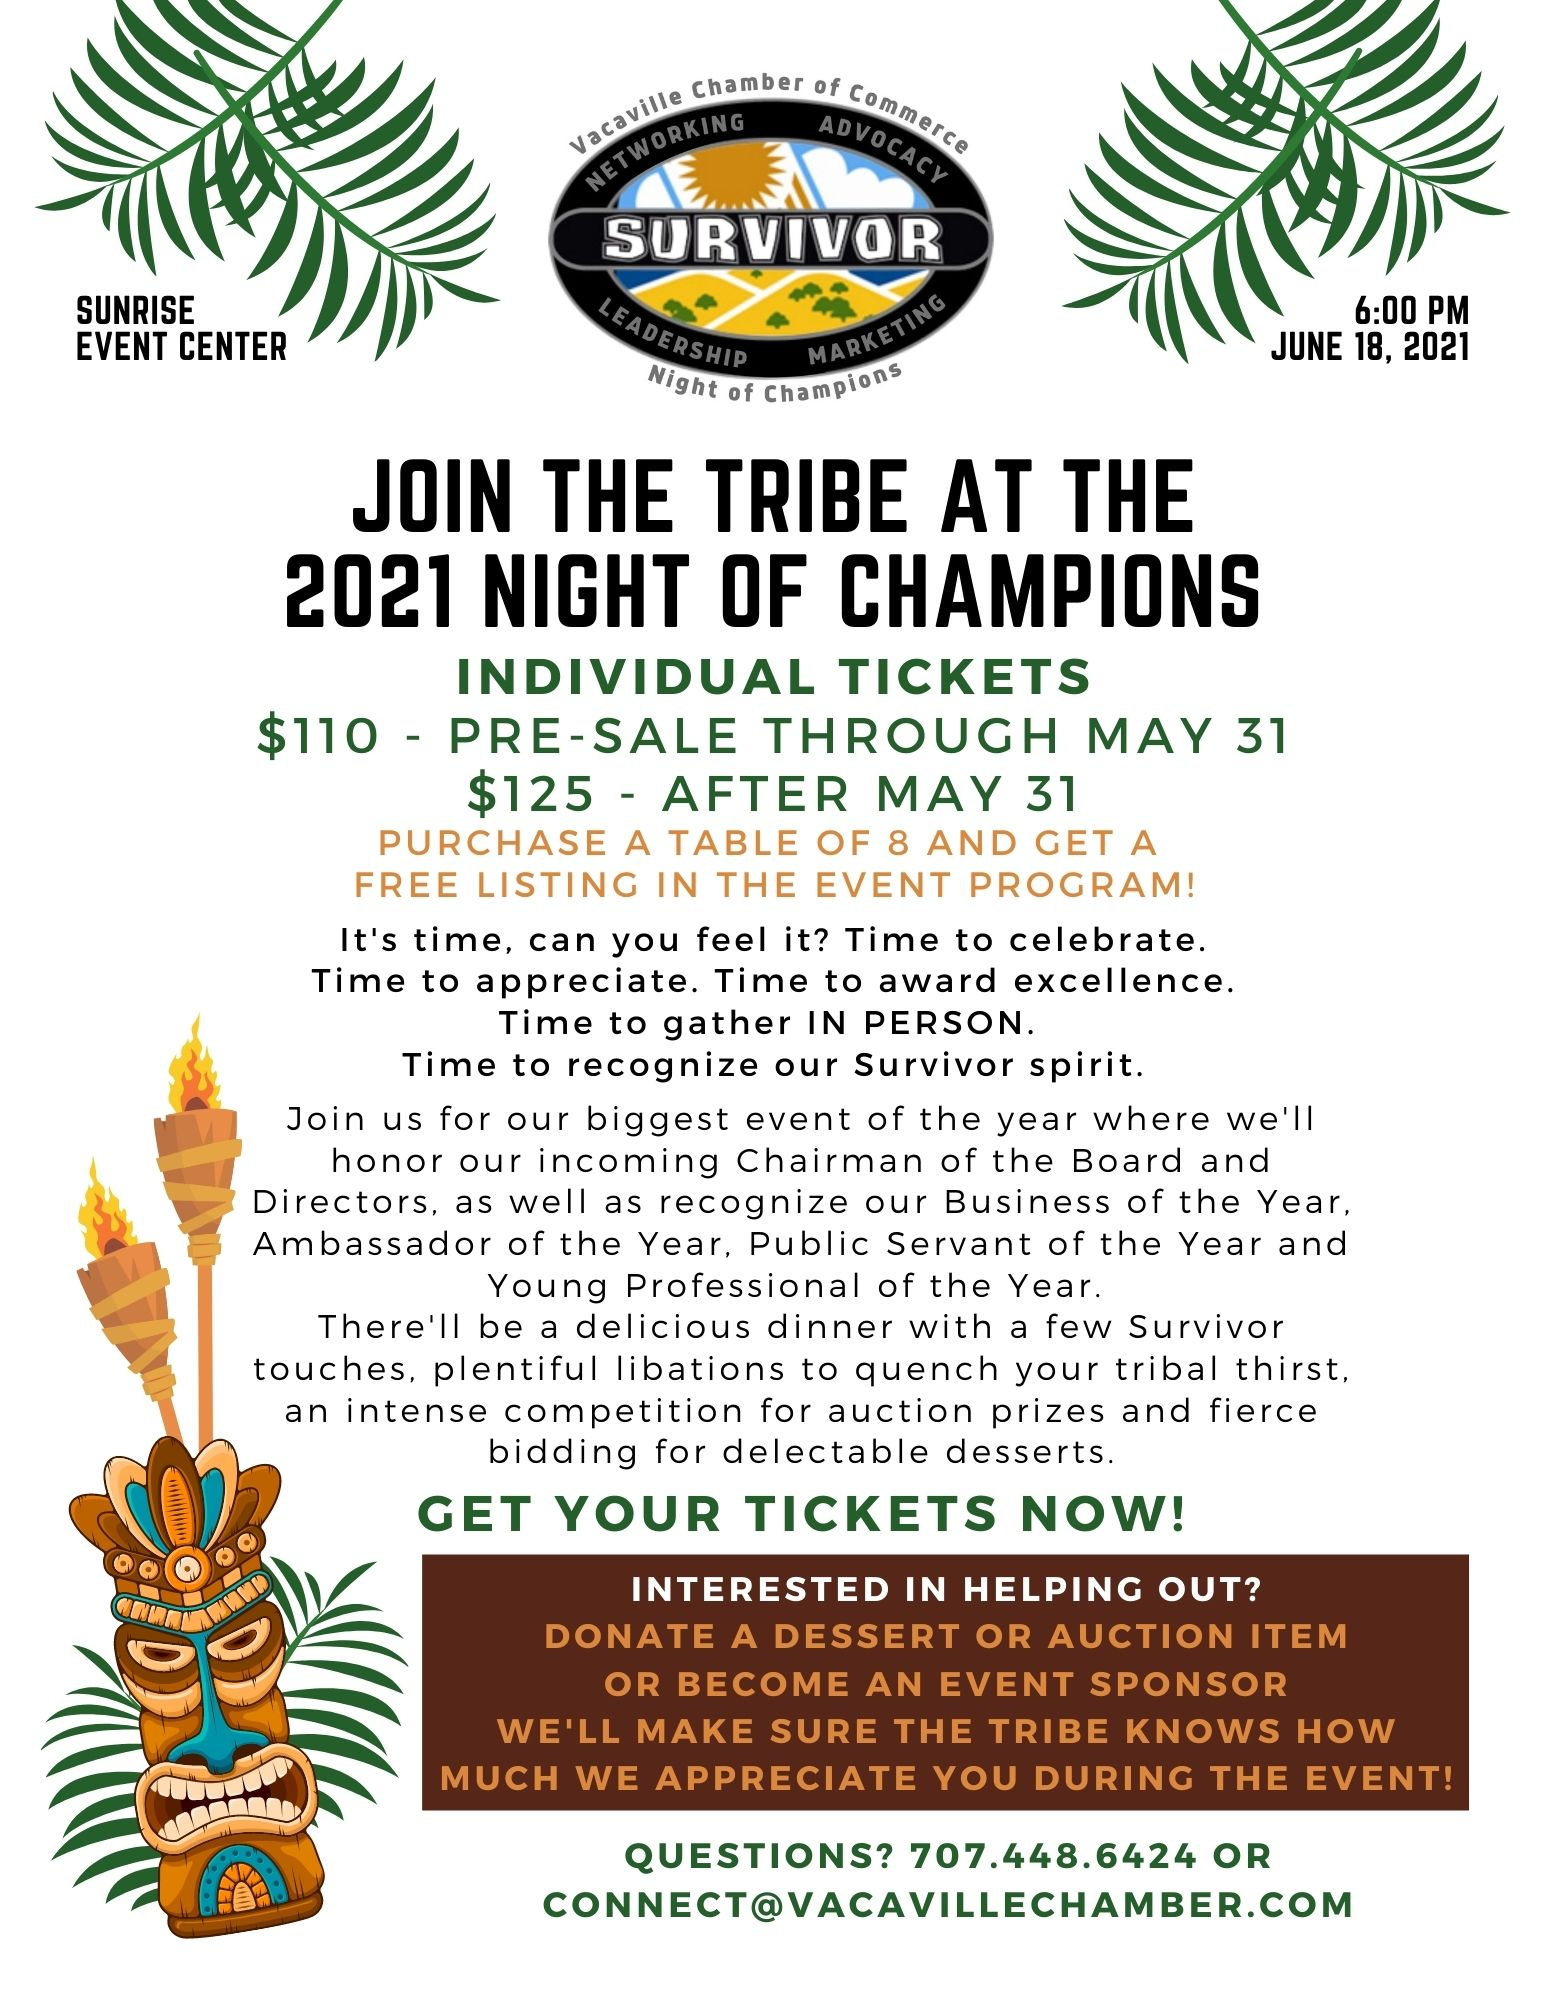 Night of Champions event flyer 2021